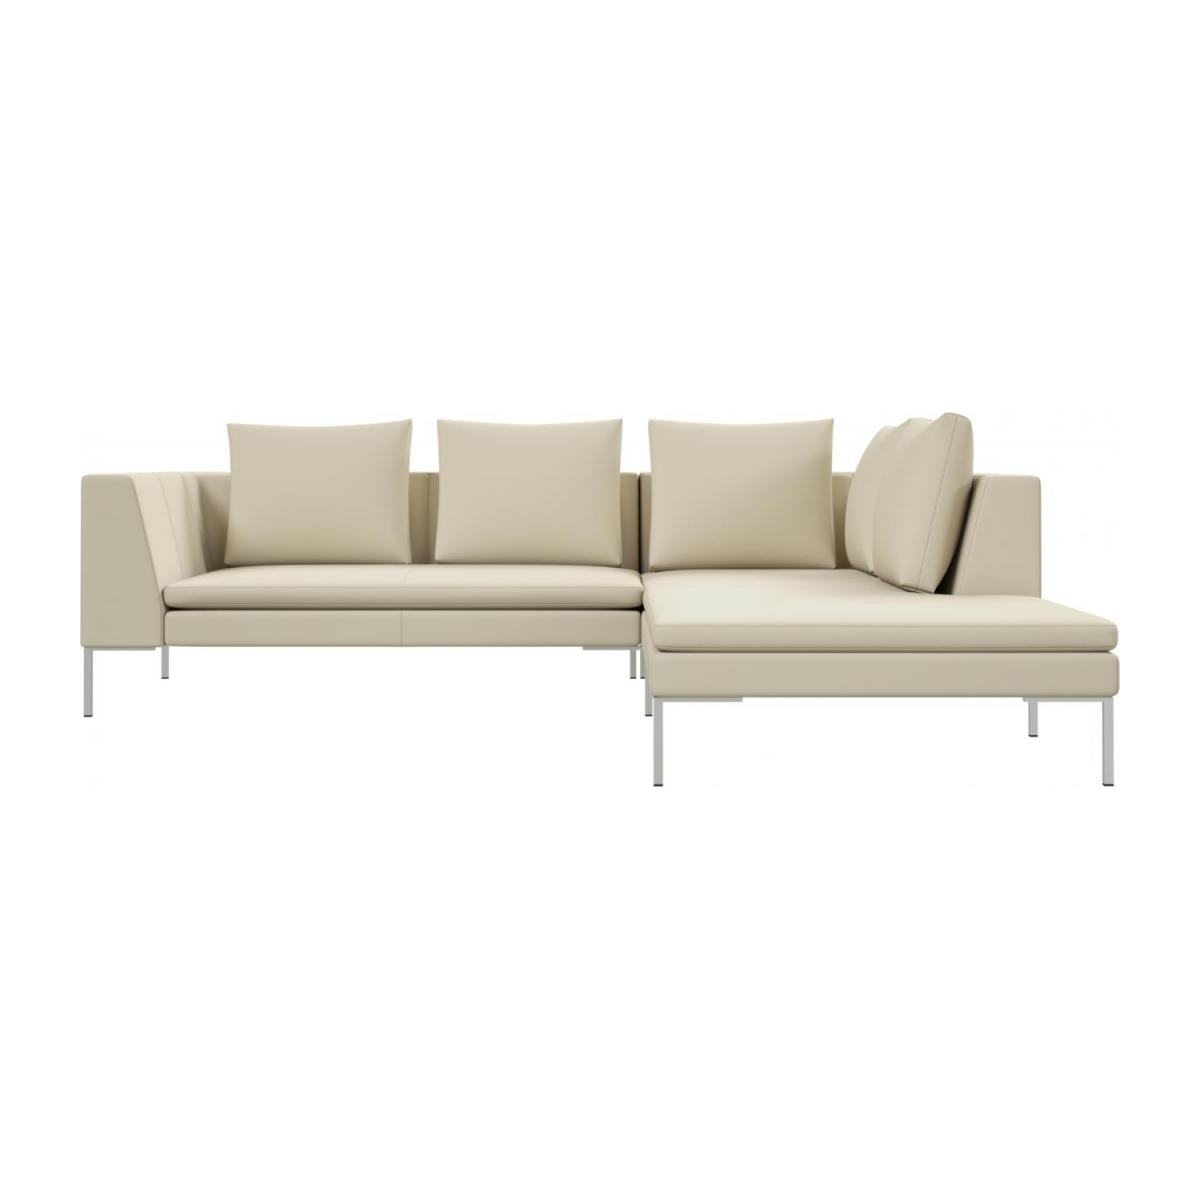 2 seater sofa with chaise longue on the right in Savoy semi-aniline leather, off white  n°2